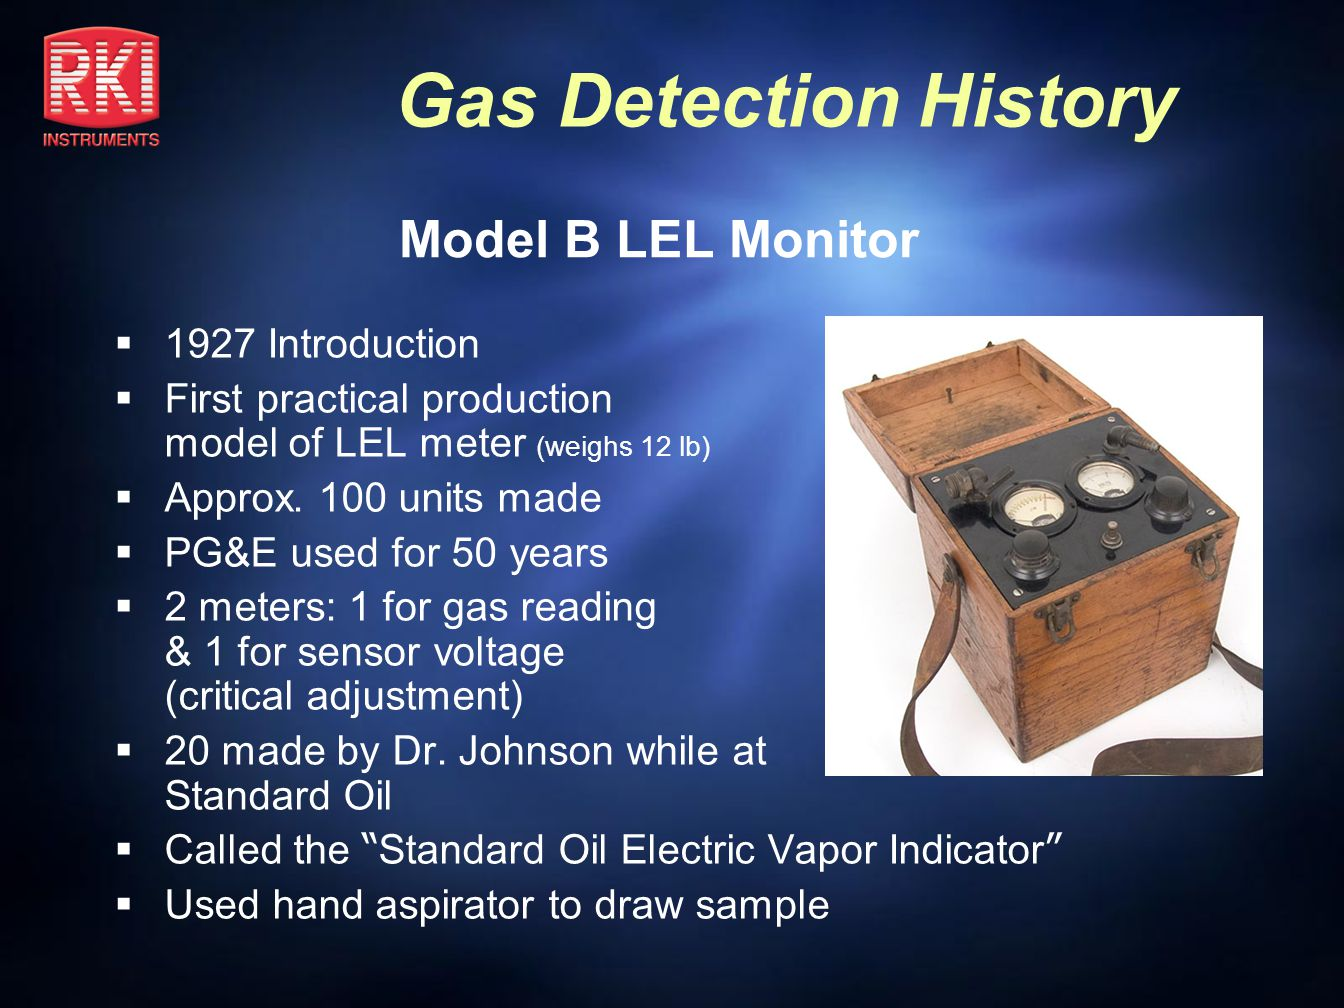 Gas Detection History Riken Model GX-82 1982 Introduction Revolutionary instrument dominated market for many years Worlds first 3 gas belt worn unit with alarm Extender cable for sensors available LEL/02/H2S or CO Still sold today